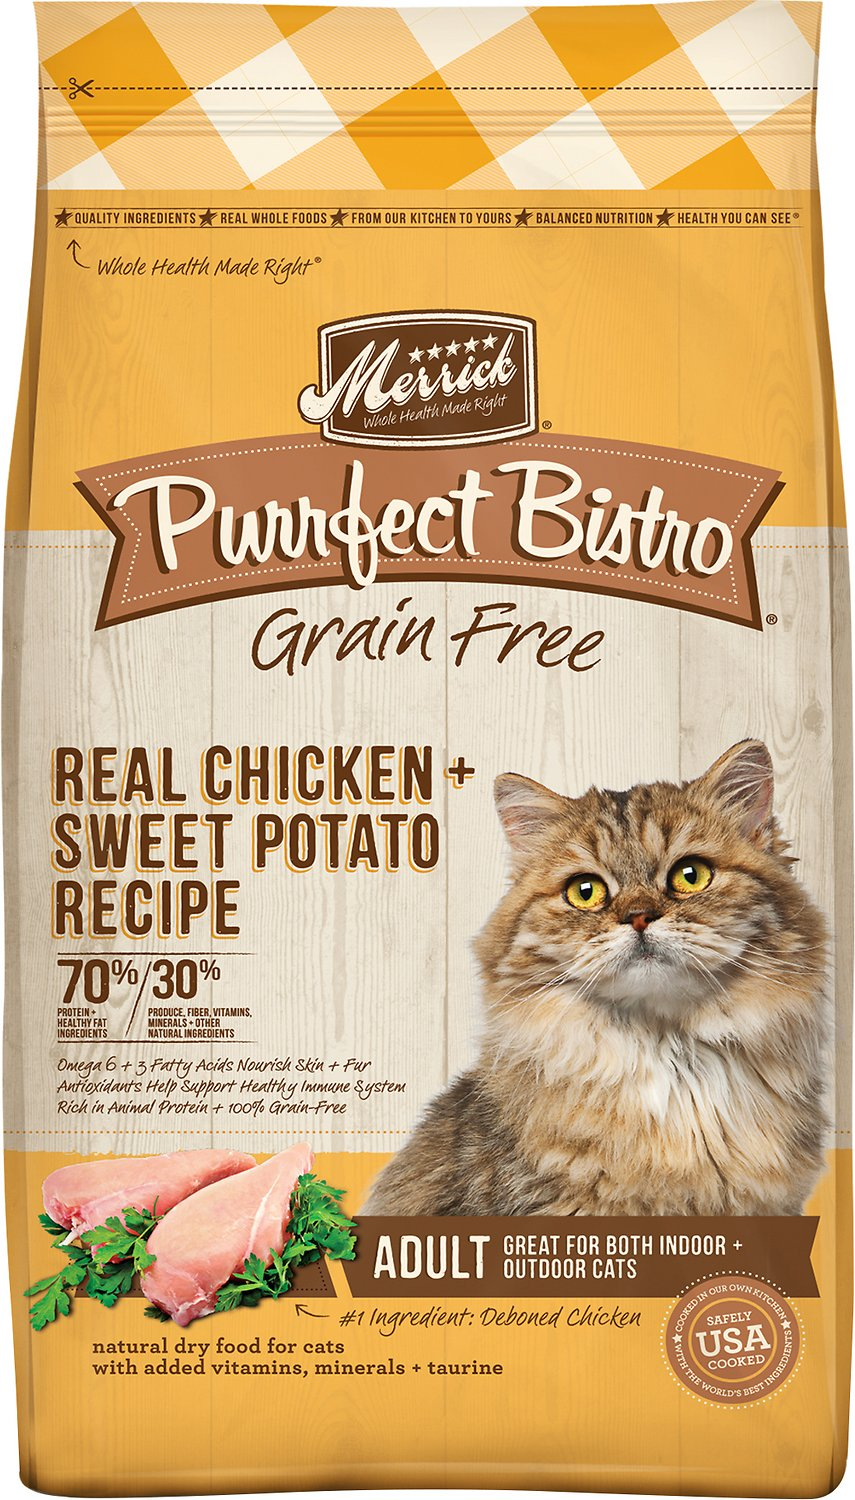 Merrick Cat Grain-Free Purrfect Bistro Real Chicken & Sweet Potato Recipe Adult Dry Cat Food Image